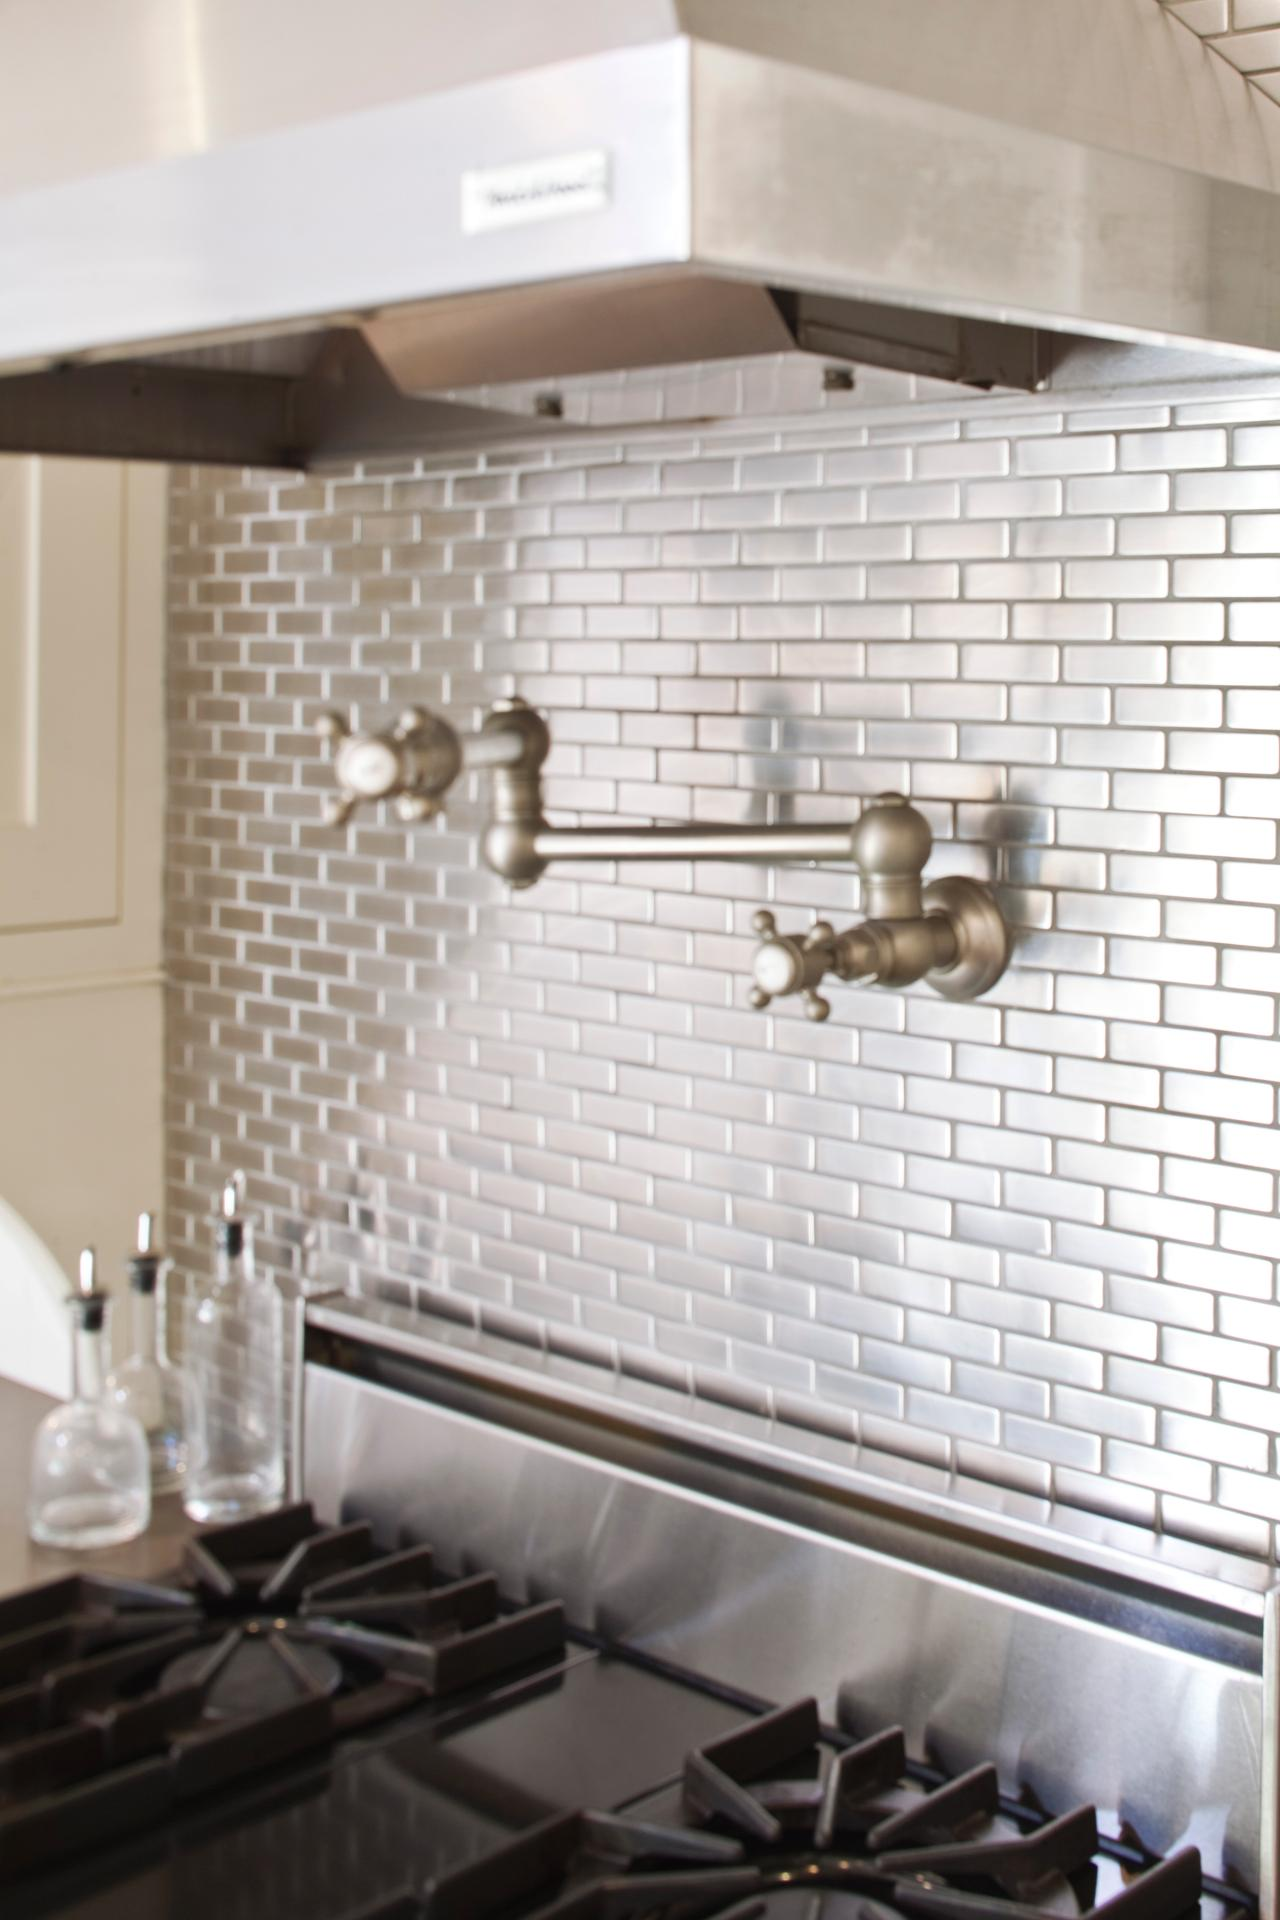 Make a splash with these backsplash designs bkc kitchen for Bathroom backsplash